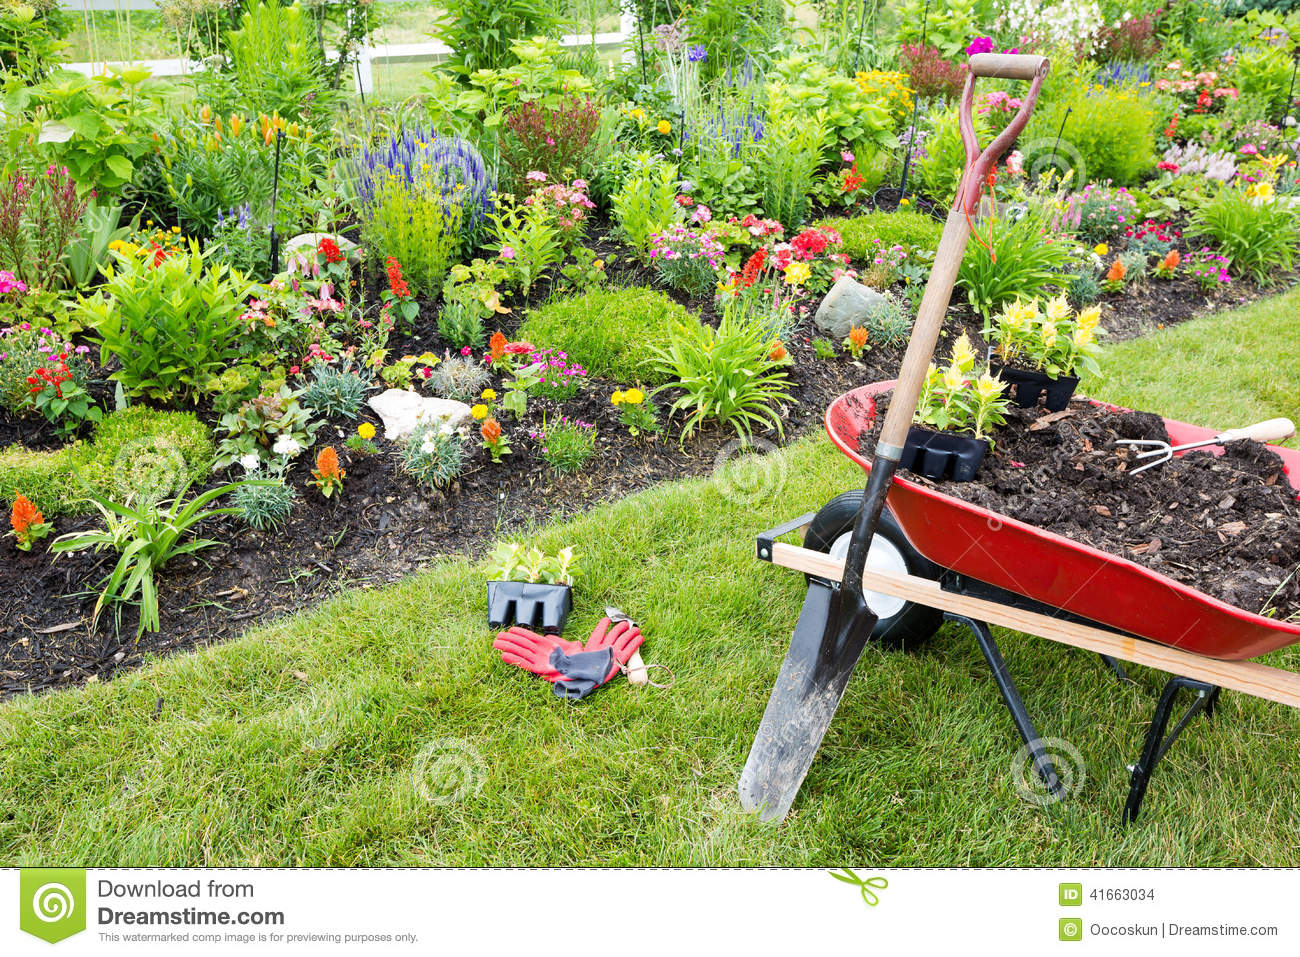 Gardening equipment ready for use stock photo image for Gardening tools used in planting crossword clue